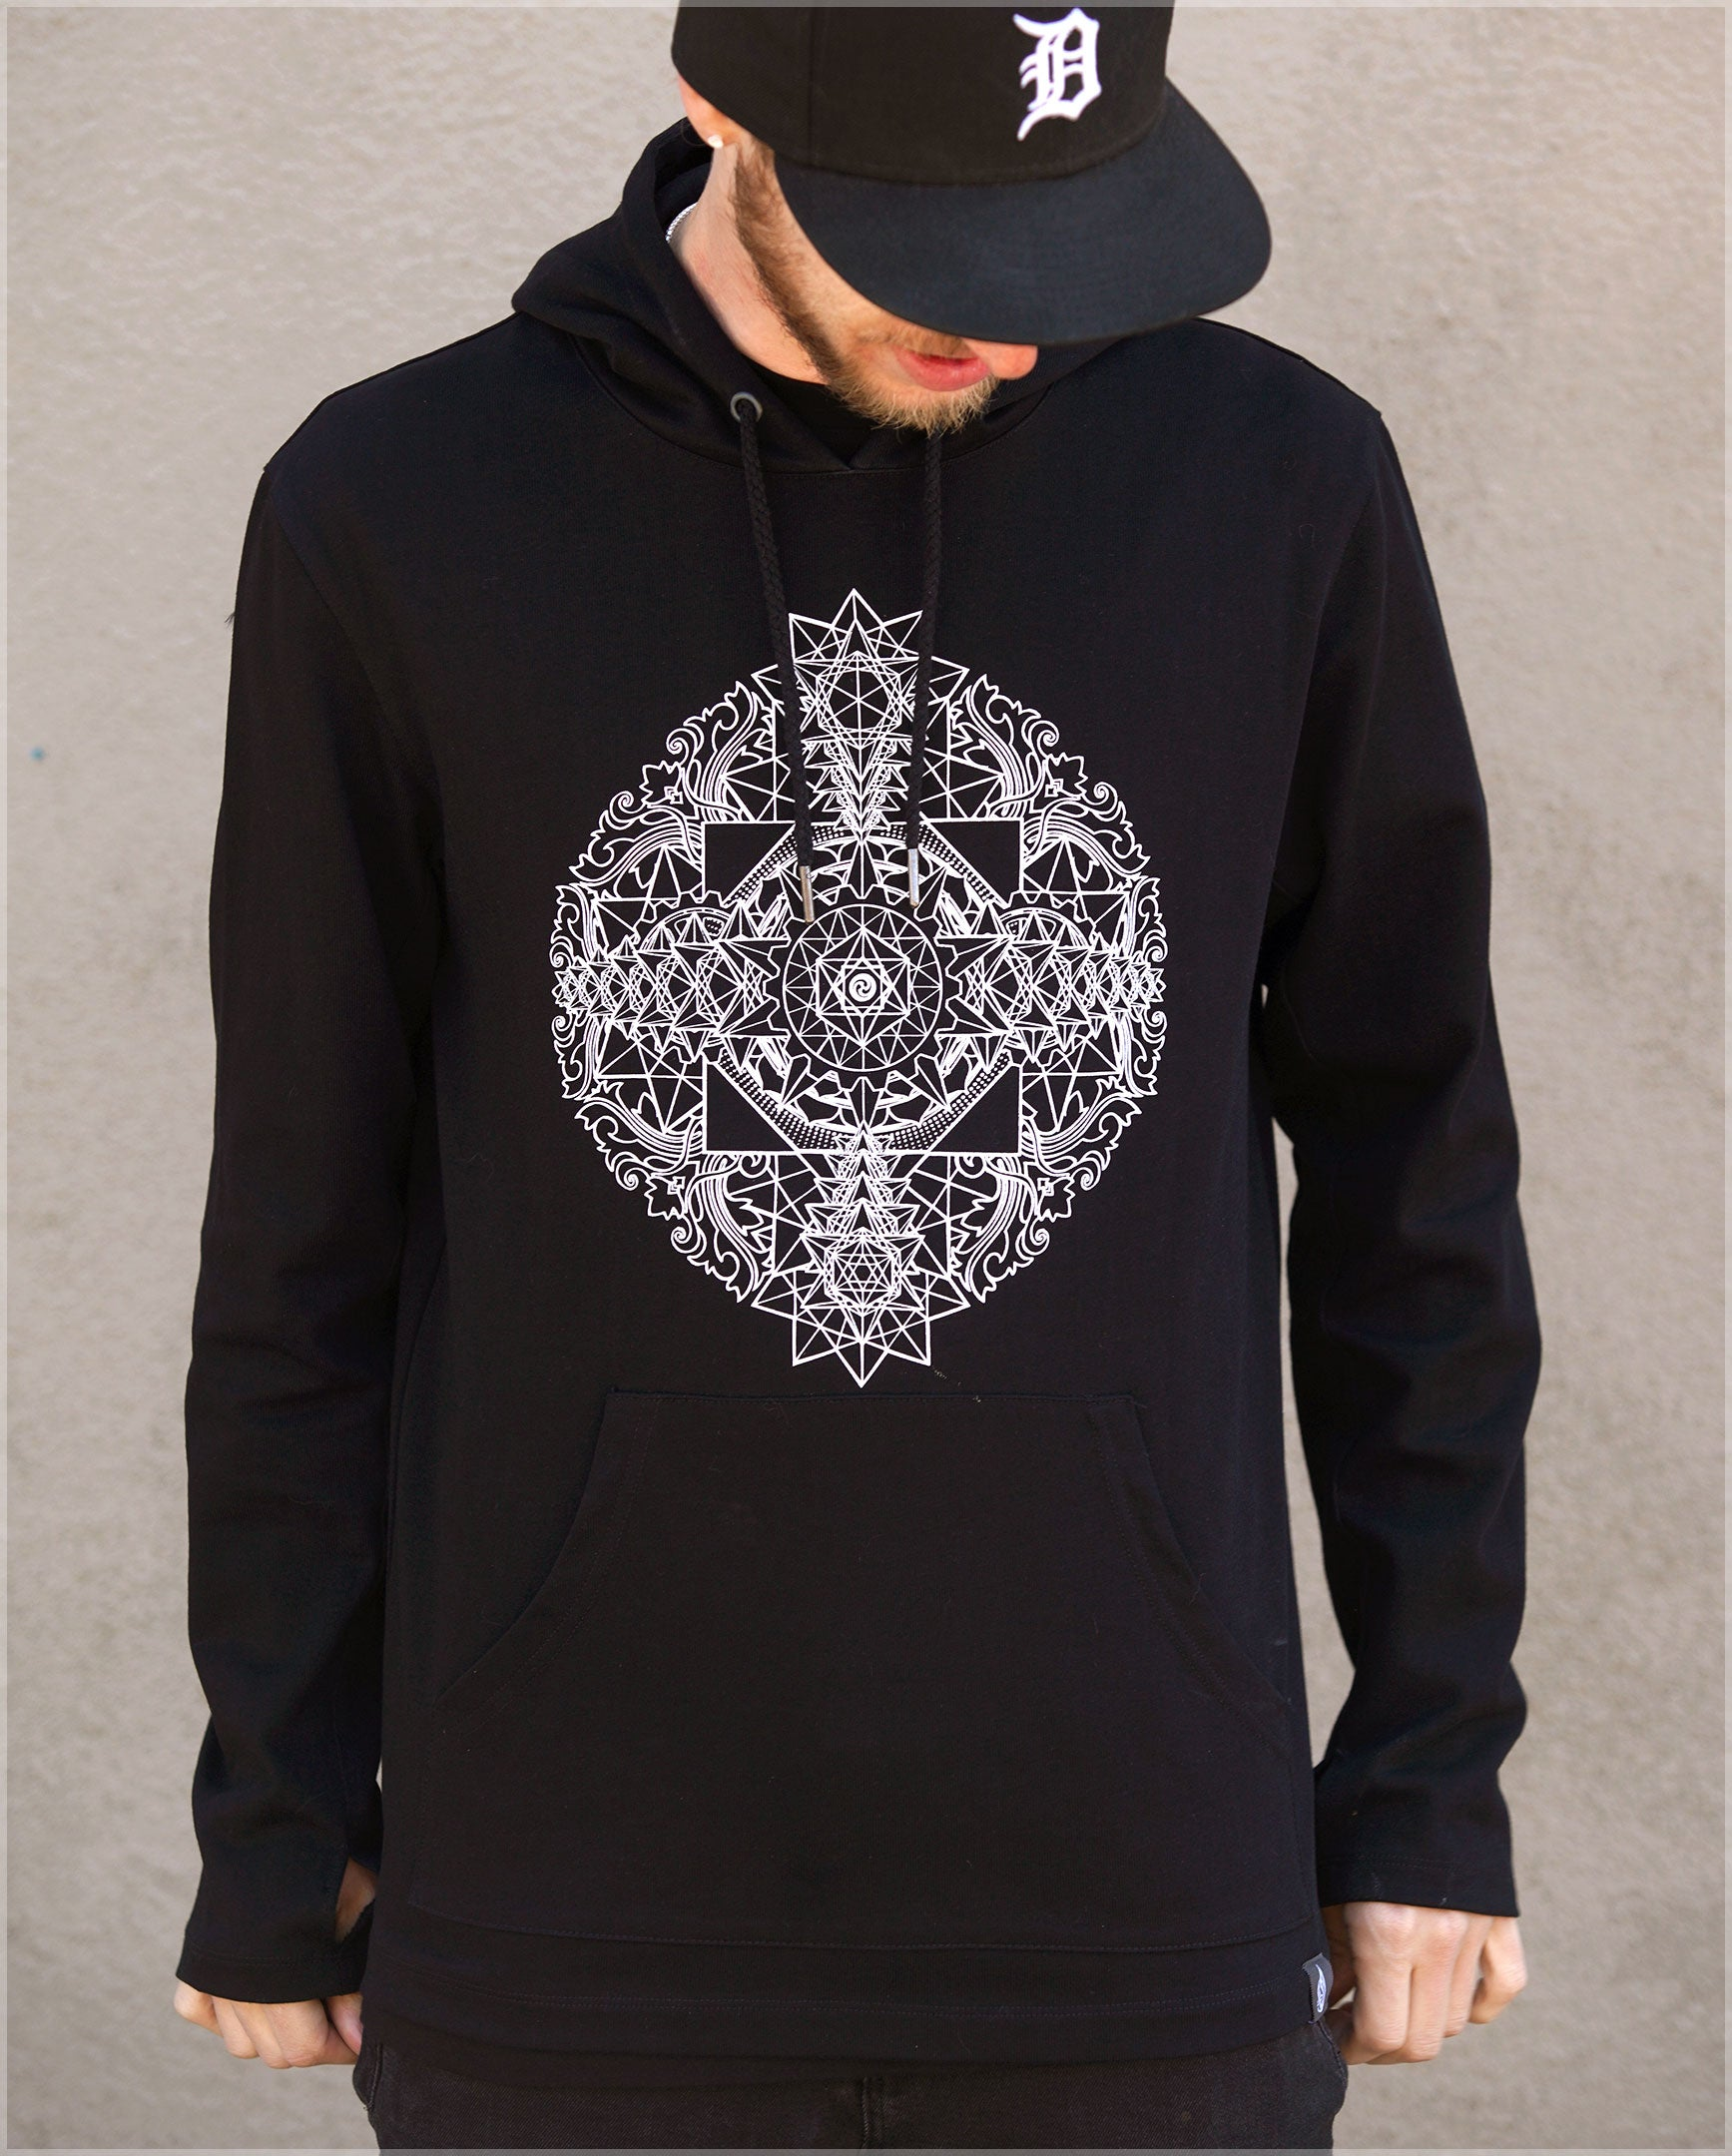 Sri Yantra Cotton Pullover Hoodie by Kimi Takemura